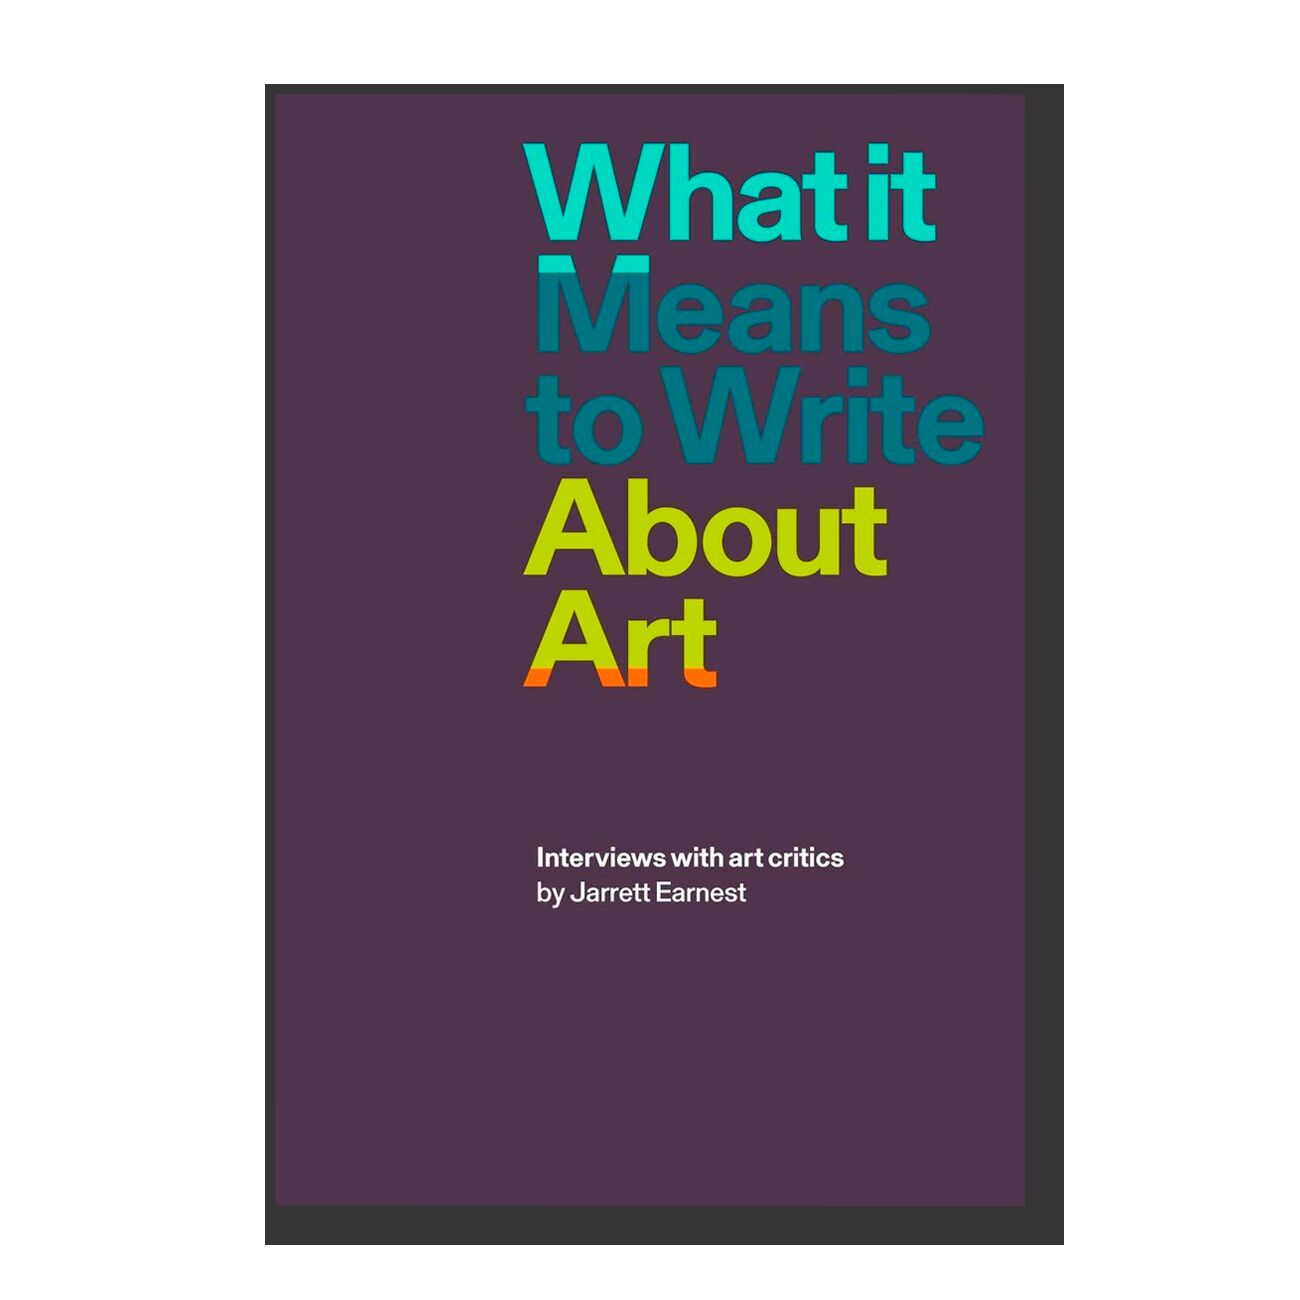 What it Means to Write About Art: Interviews with Art Critics